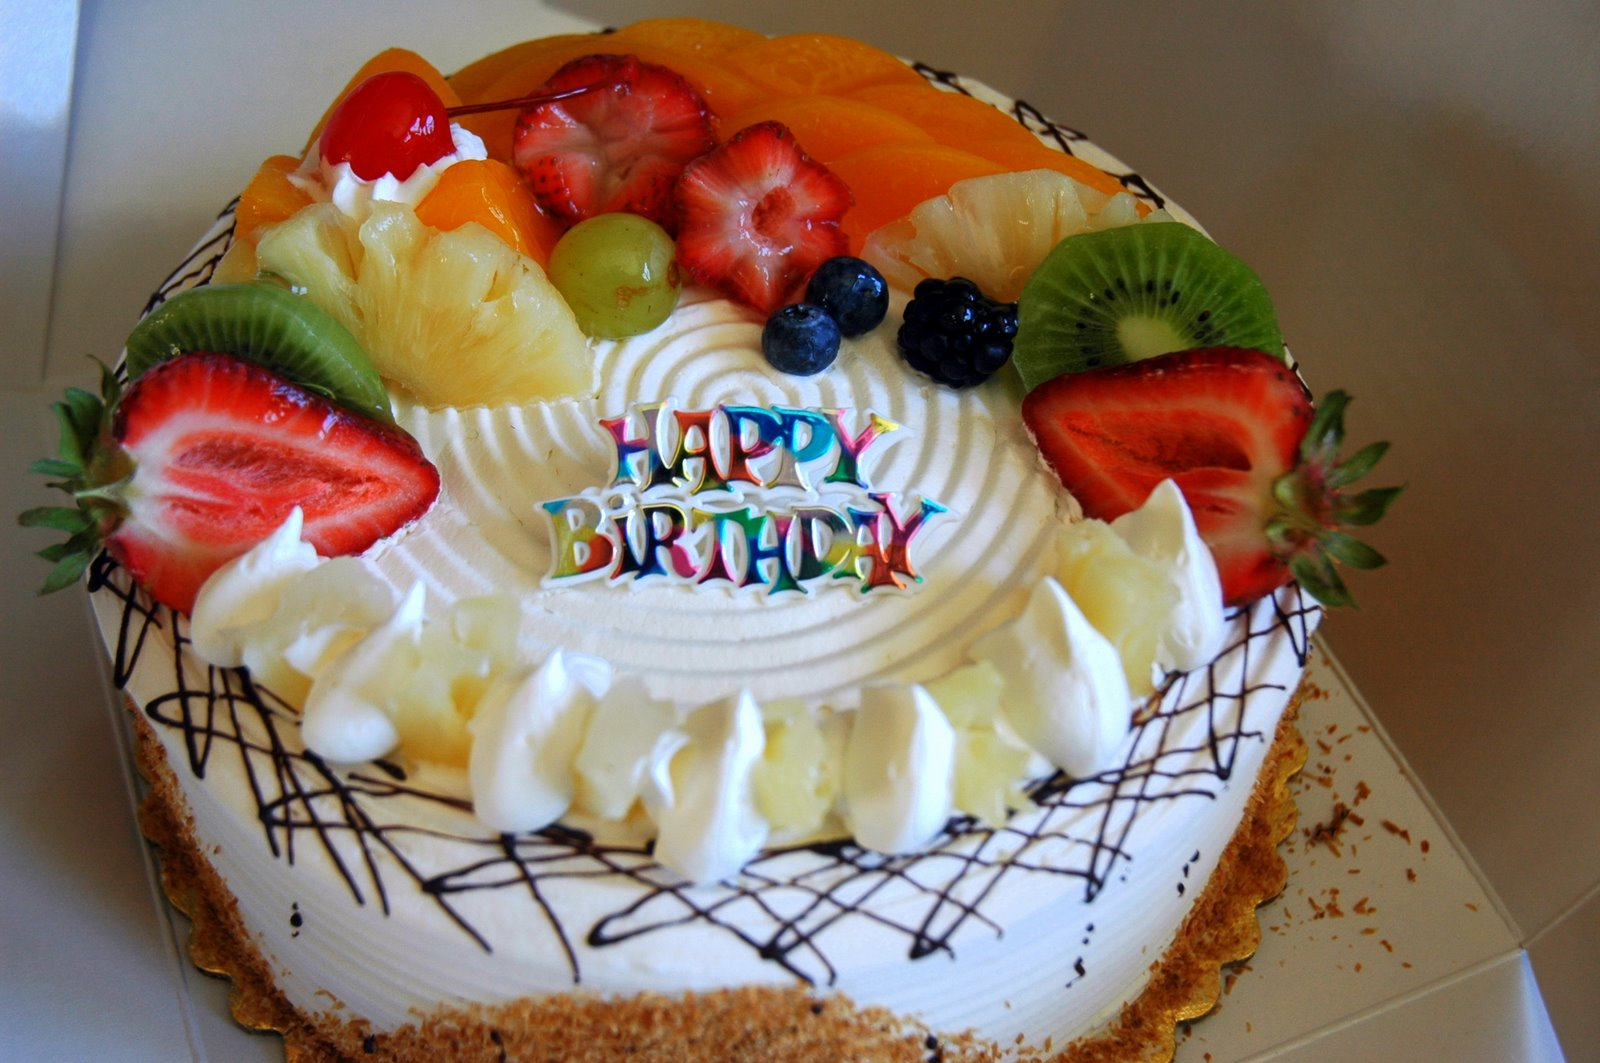 Cake Images In Birthday : Online Wallpapers Shop: Happy Birthday Cake Pictures ...